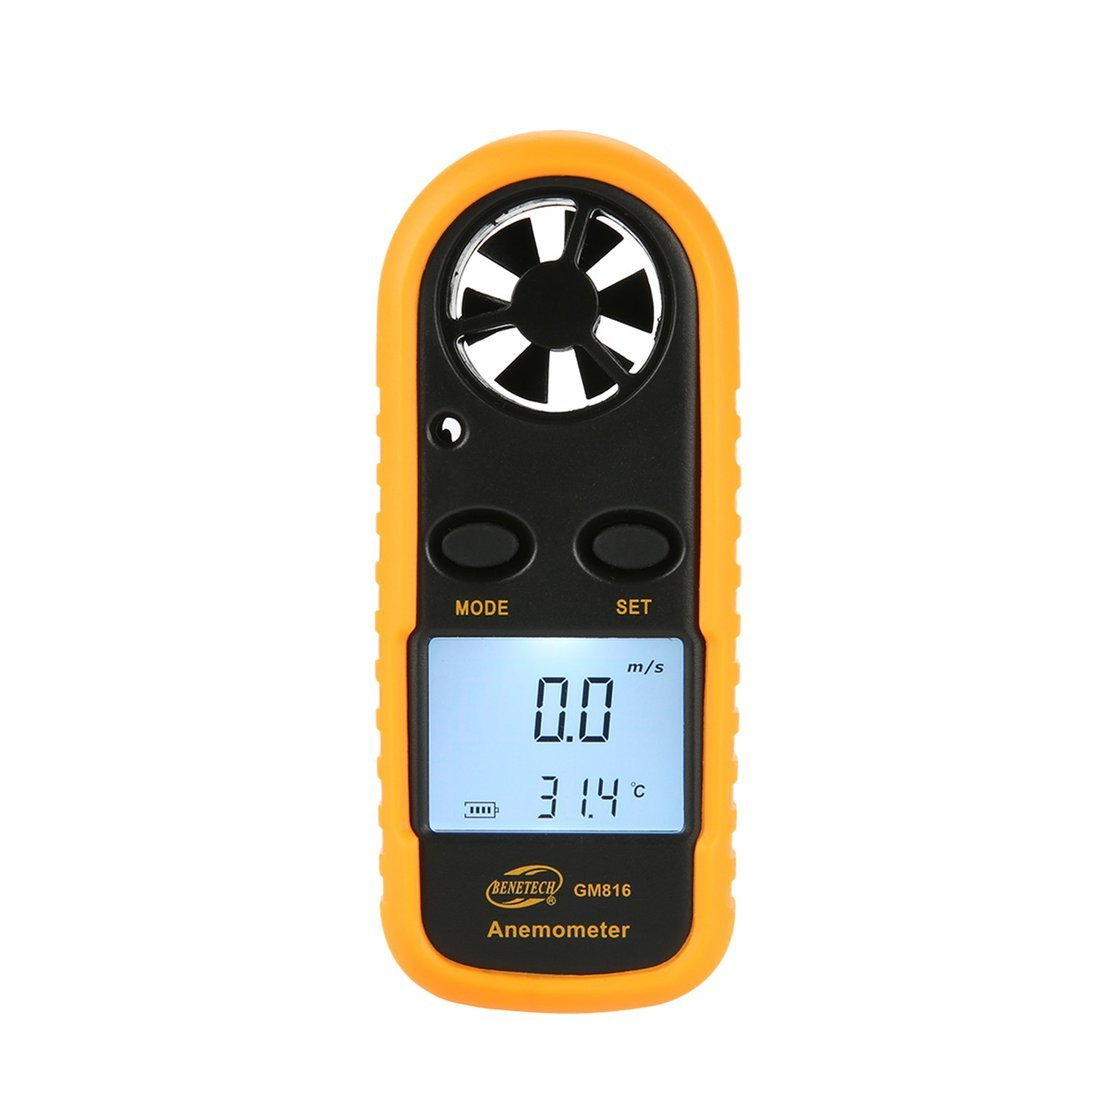 Exiao BENETECH GM816 Digital Anemometer Thermometer Wind Speed Air Velocity Airflow Temperature Gauge Windmeter with LCD Backlight